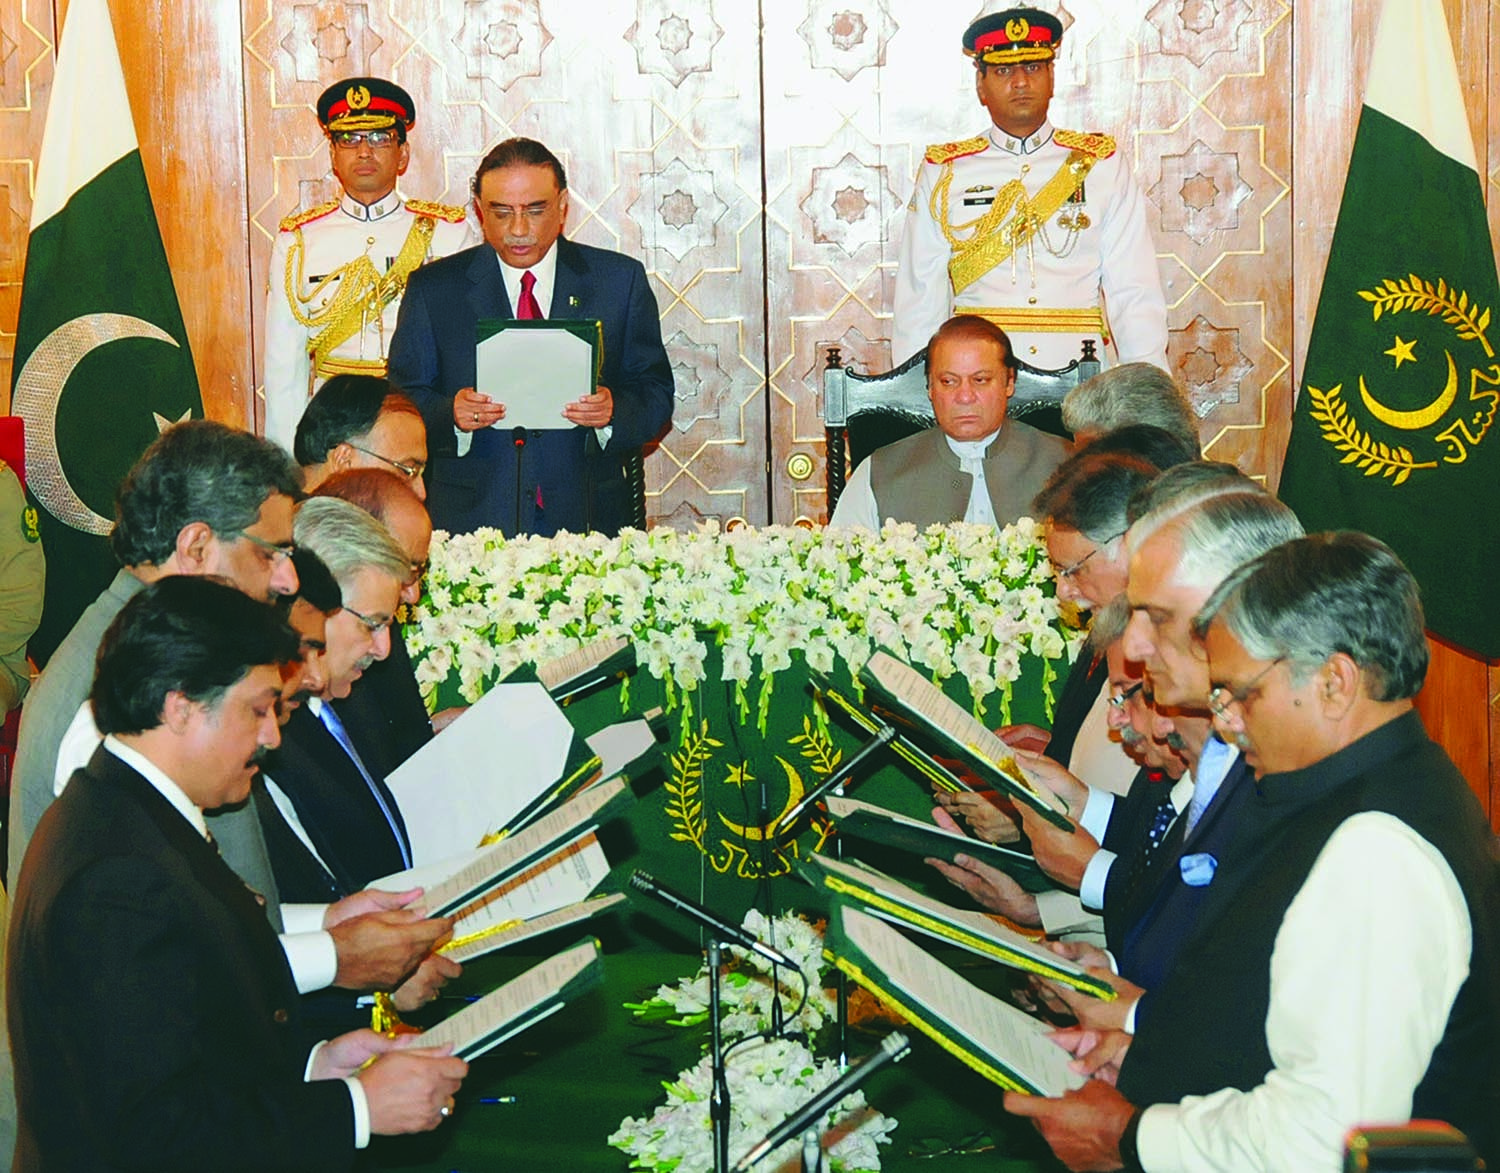 President Asif Zardari administering oath of office to the cabinet led by Mian Nawaz Sharif whose PML-N won the elections in May 2013.